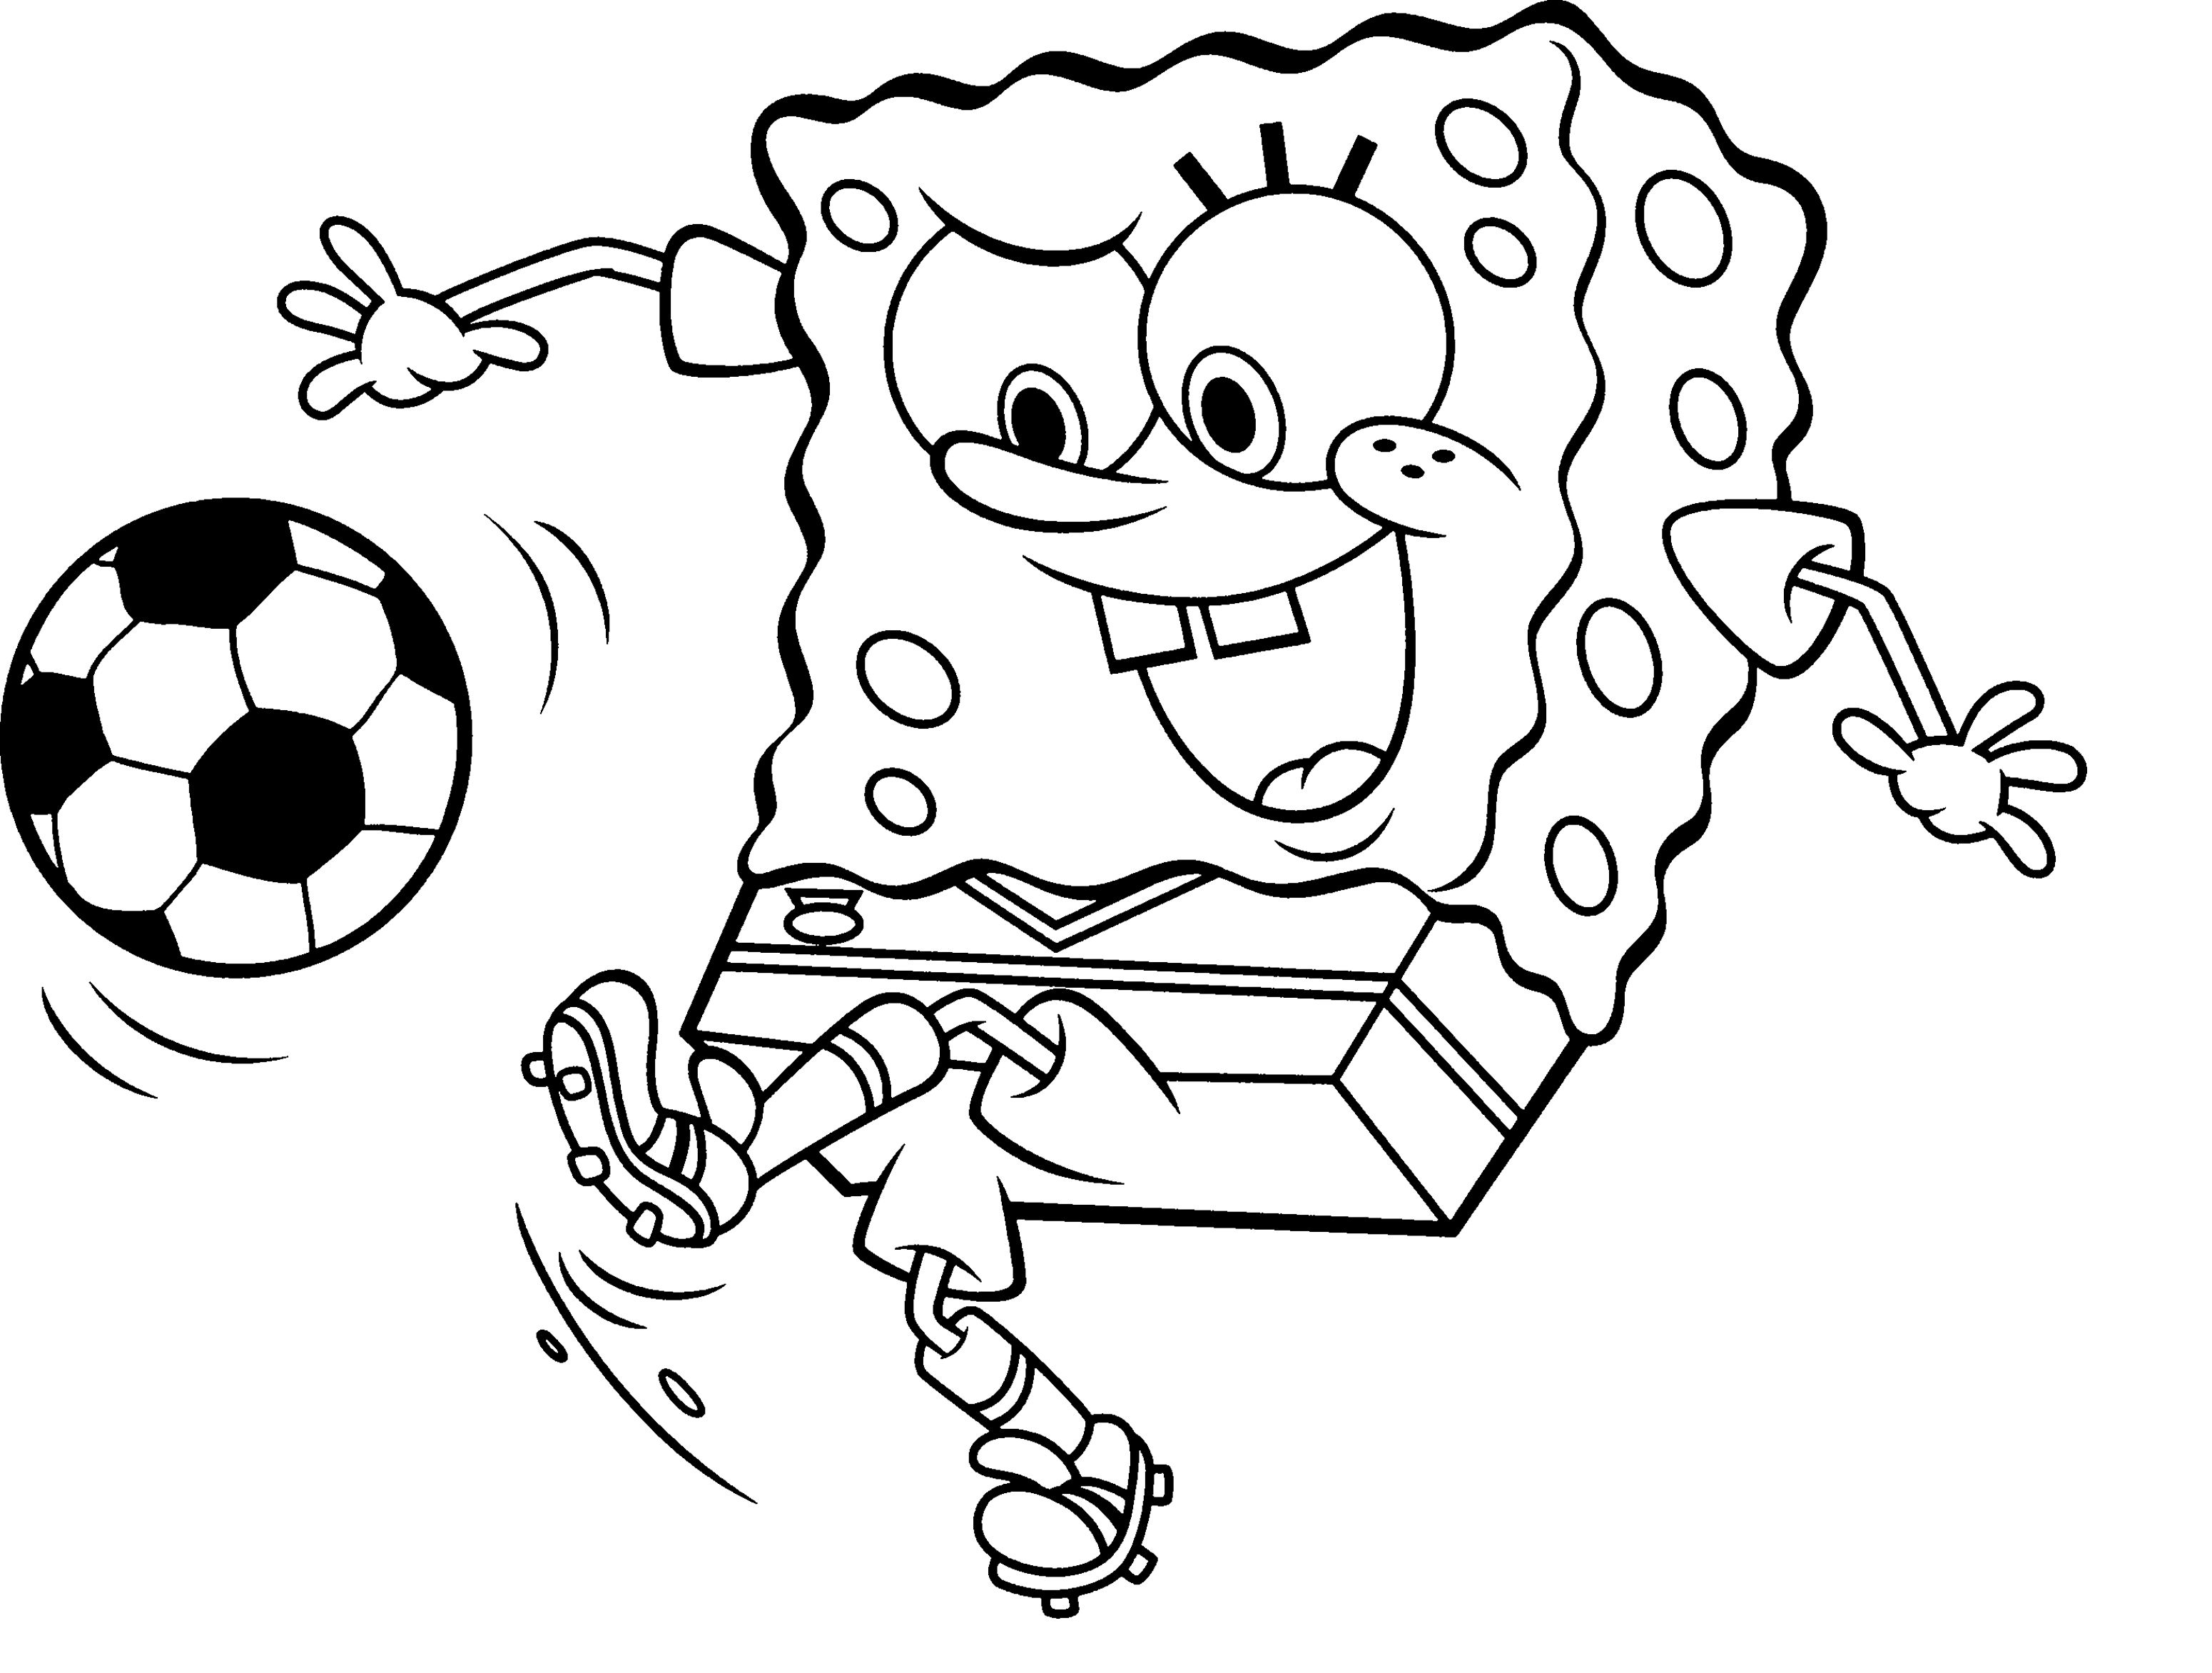 Collection Of Free Spongebob Chocolate Coloring Page From